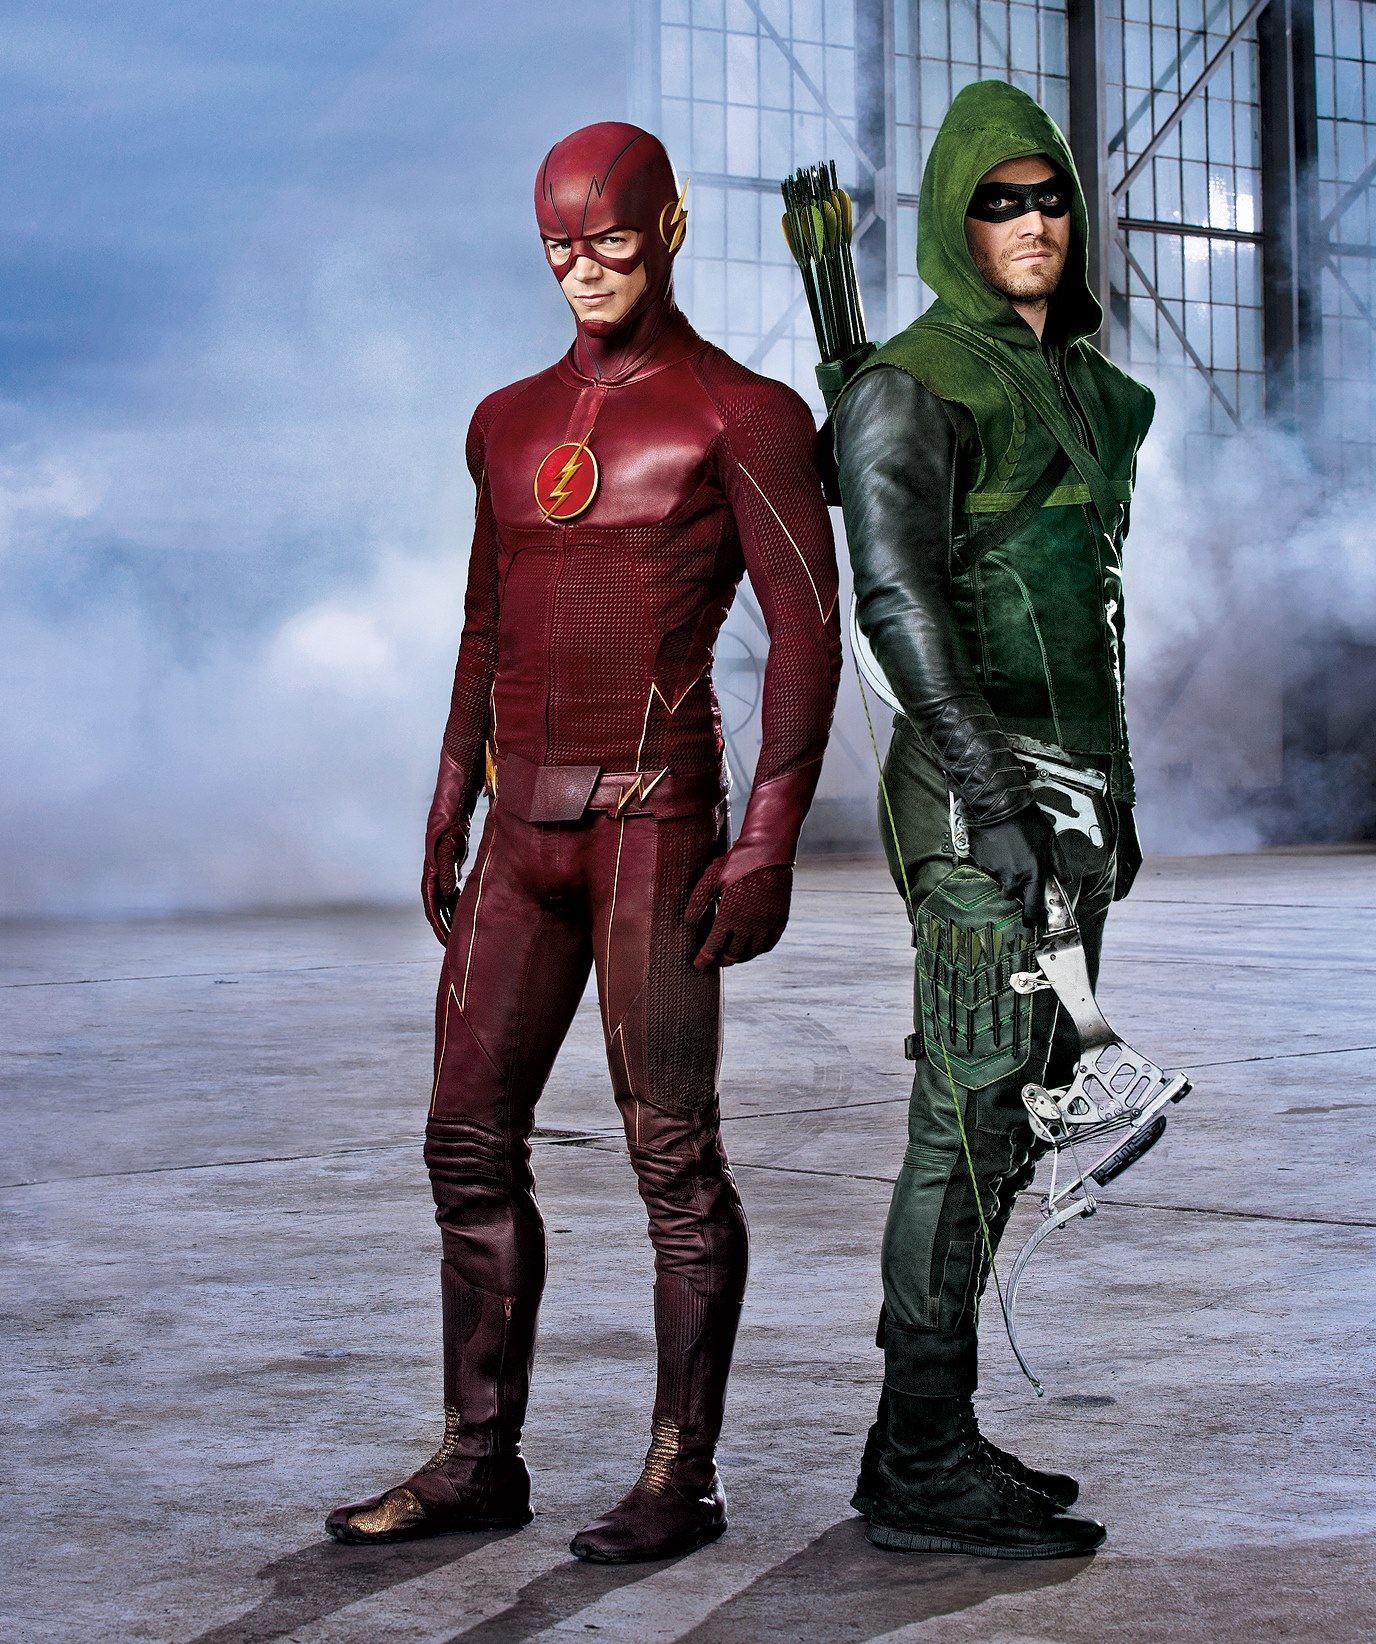 The Flash And Arrow Wallpaper Posted By Samantha Sellers